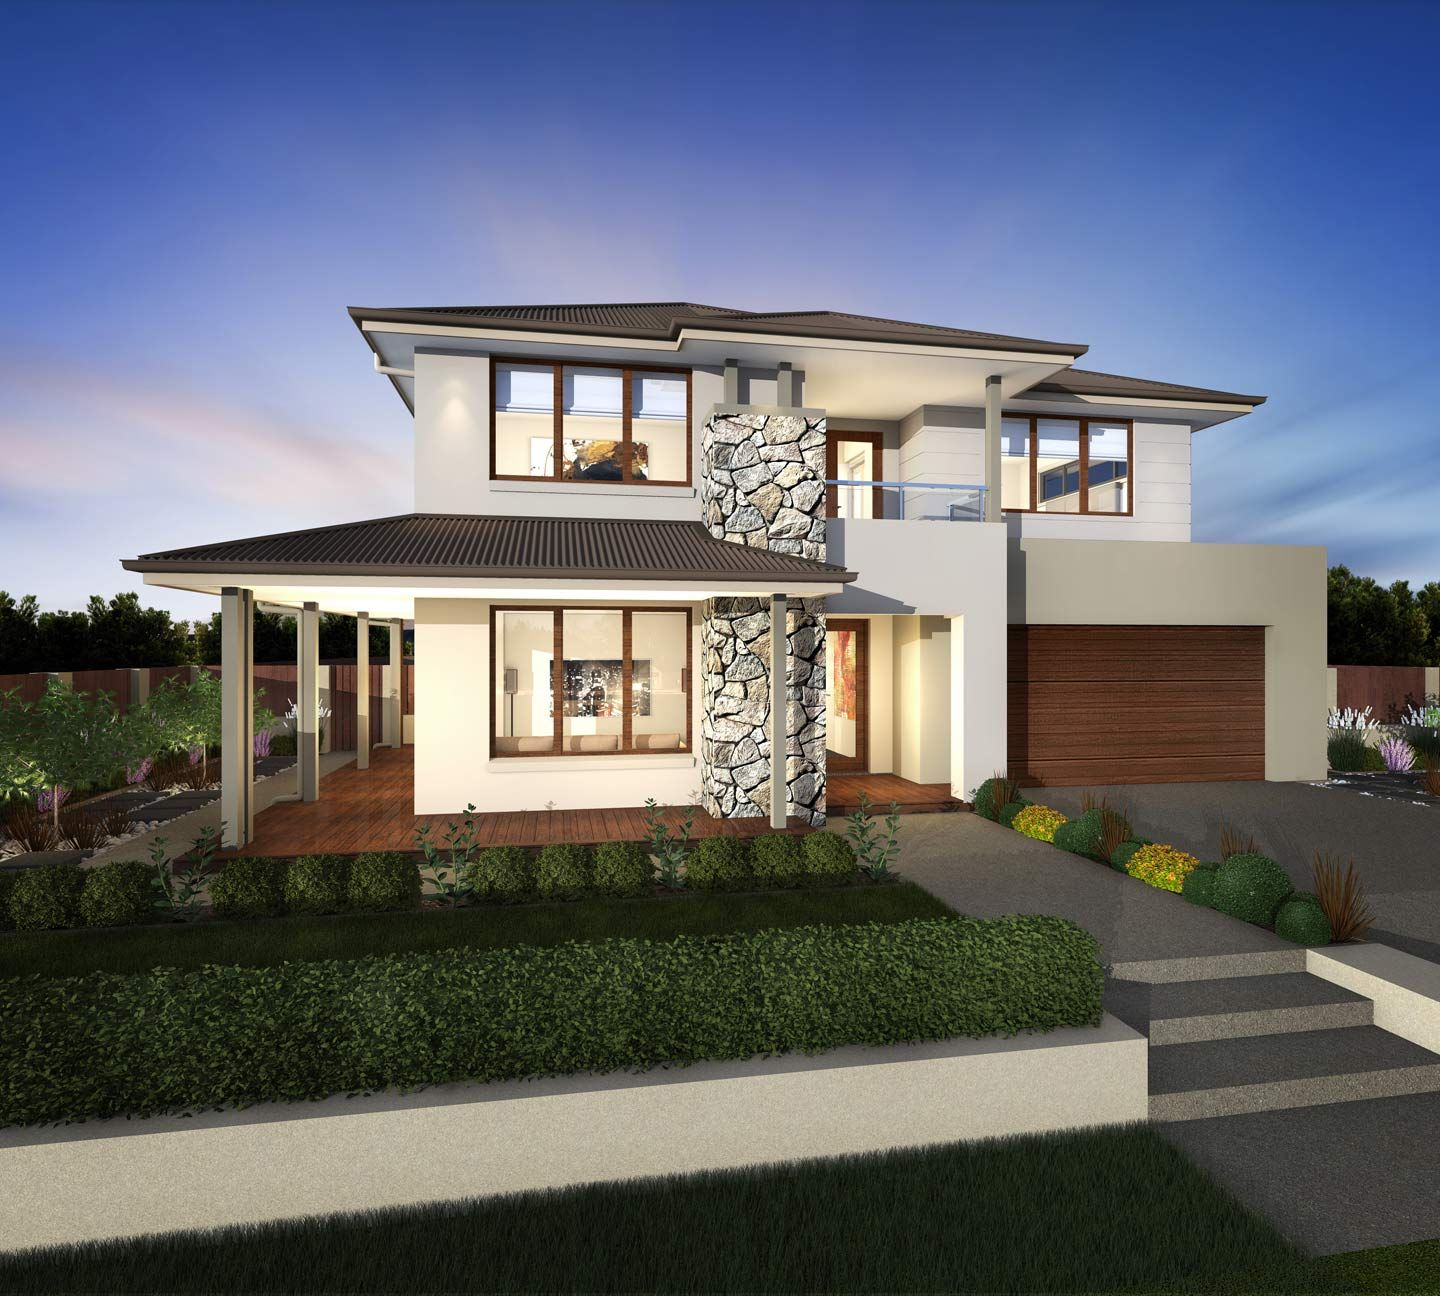 Home Design Ideas Australia: Huntingdale - Two Storey Home - Canberra